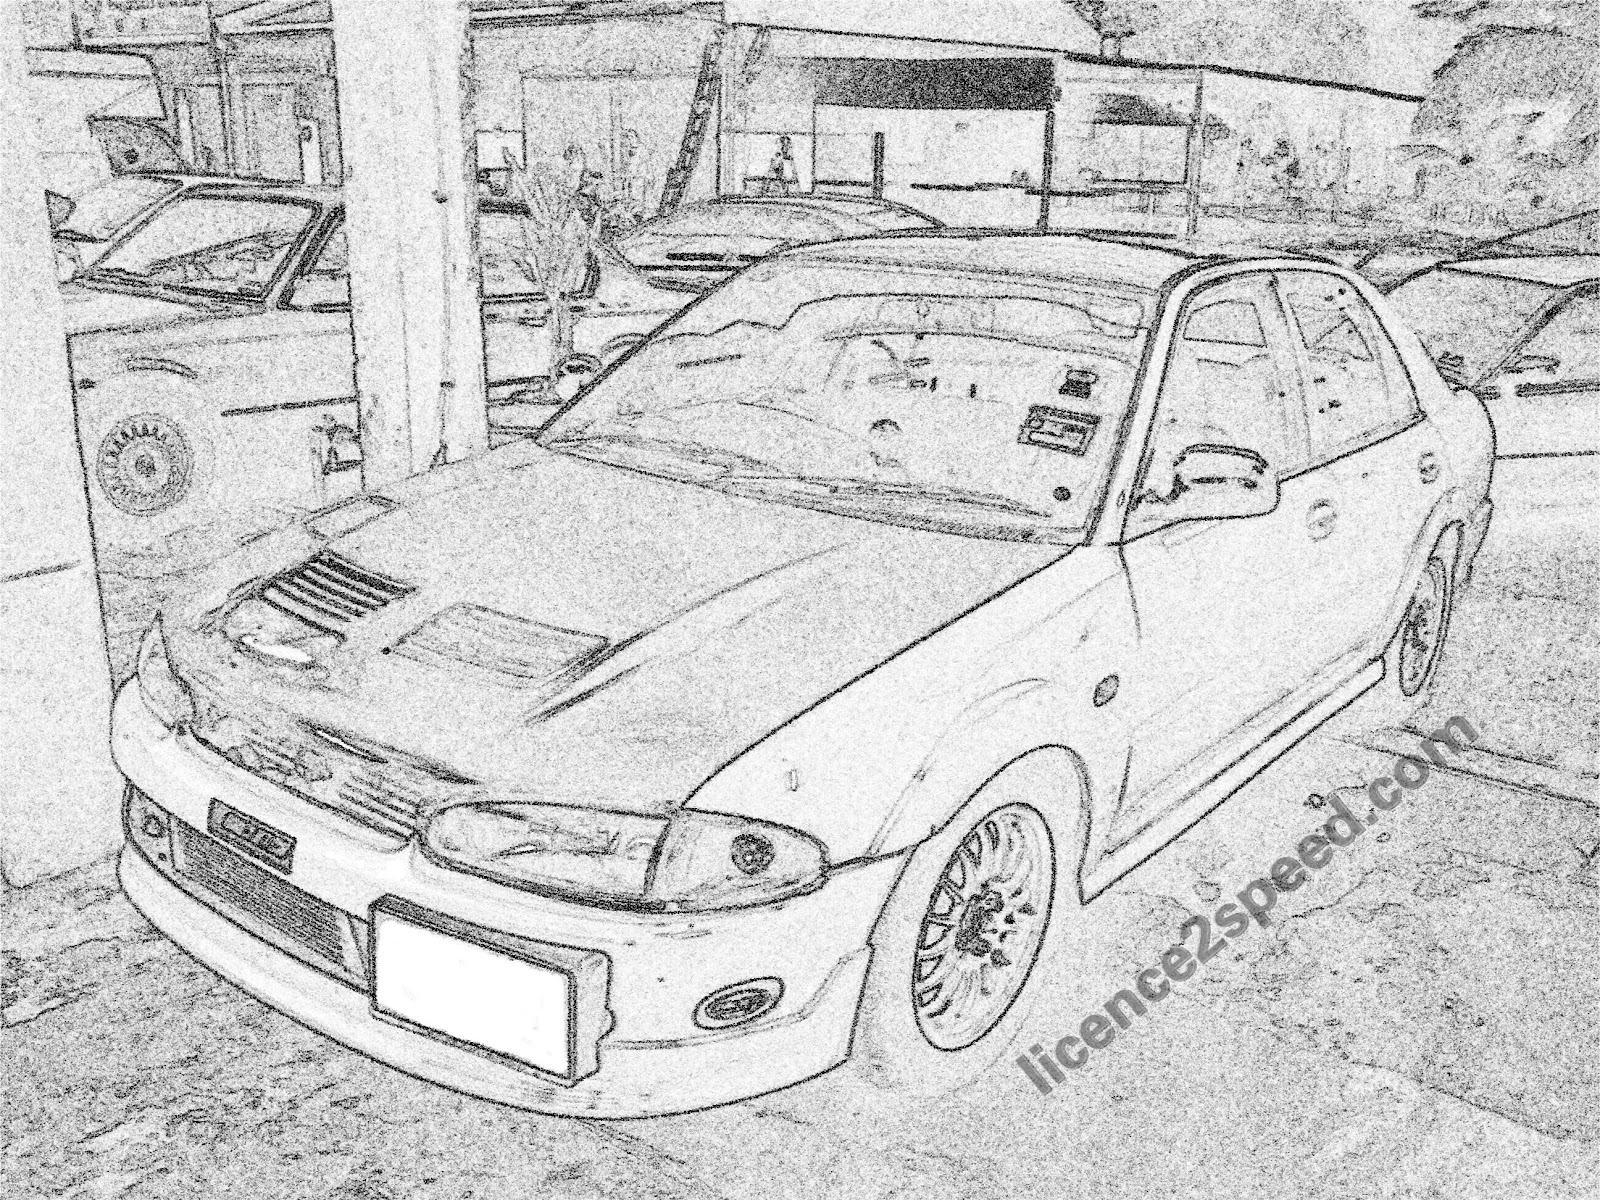 Licence To Speed For Malaysian Automotive My Project Car Budget Mitsubishi 2 4 Engine Wiring Harness 4g92 Proton Wira 16 Bolt On Turbo